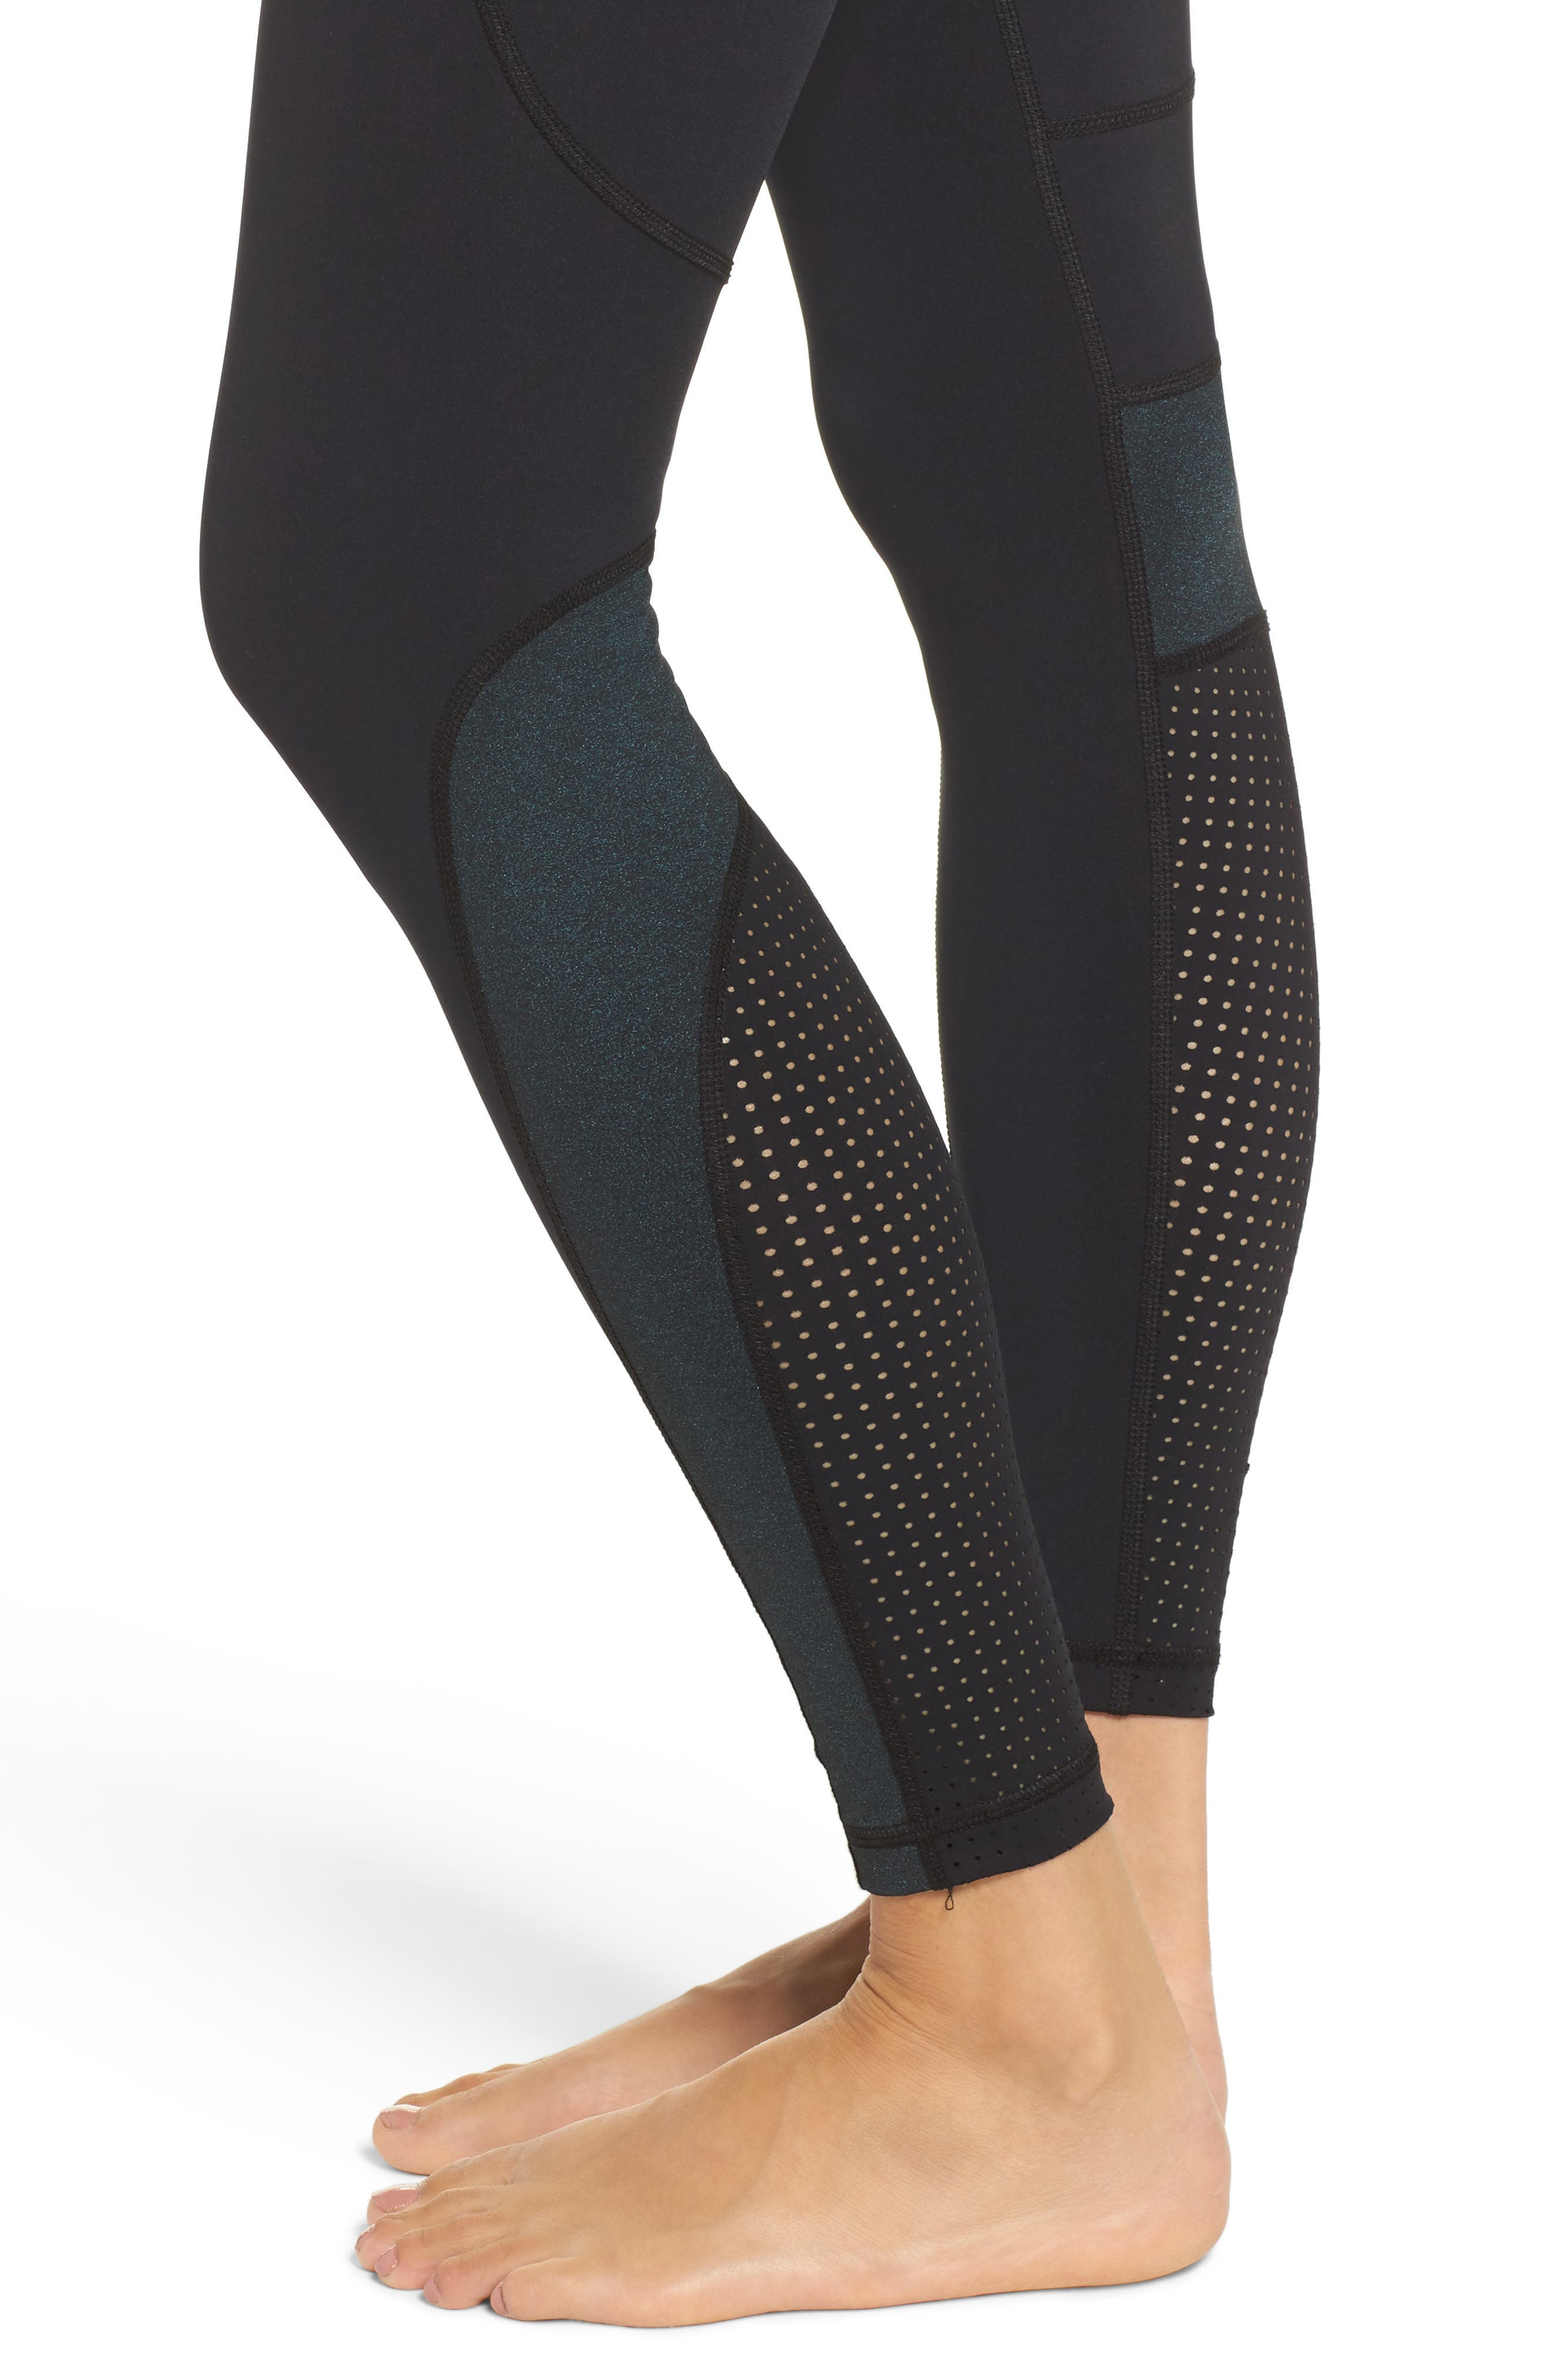 Siren Performance Tights,                             Alternate thumbnail 4, color,                             002